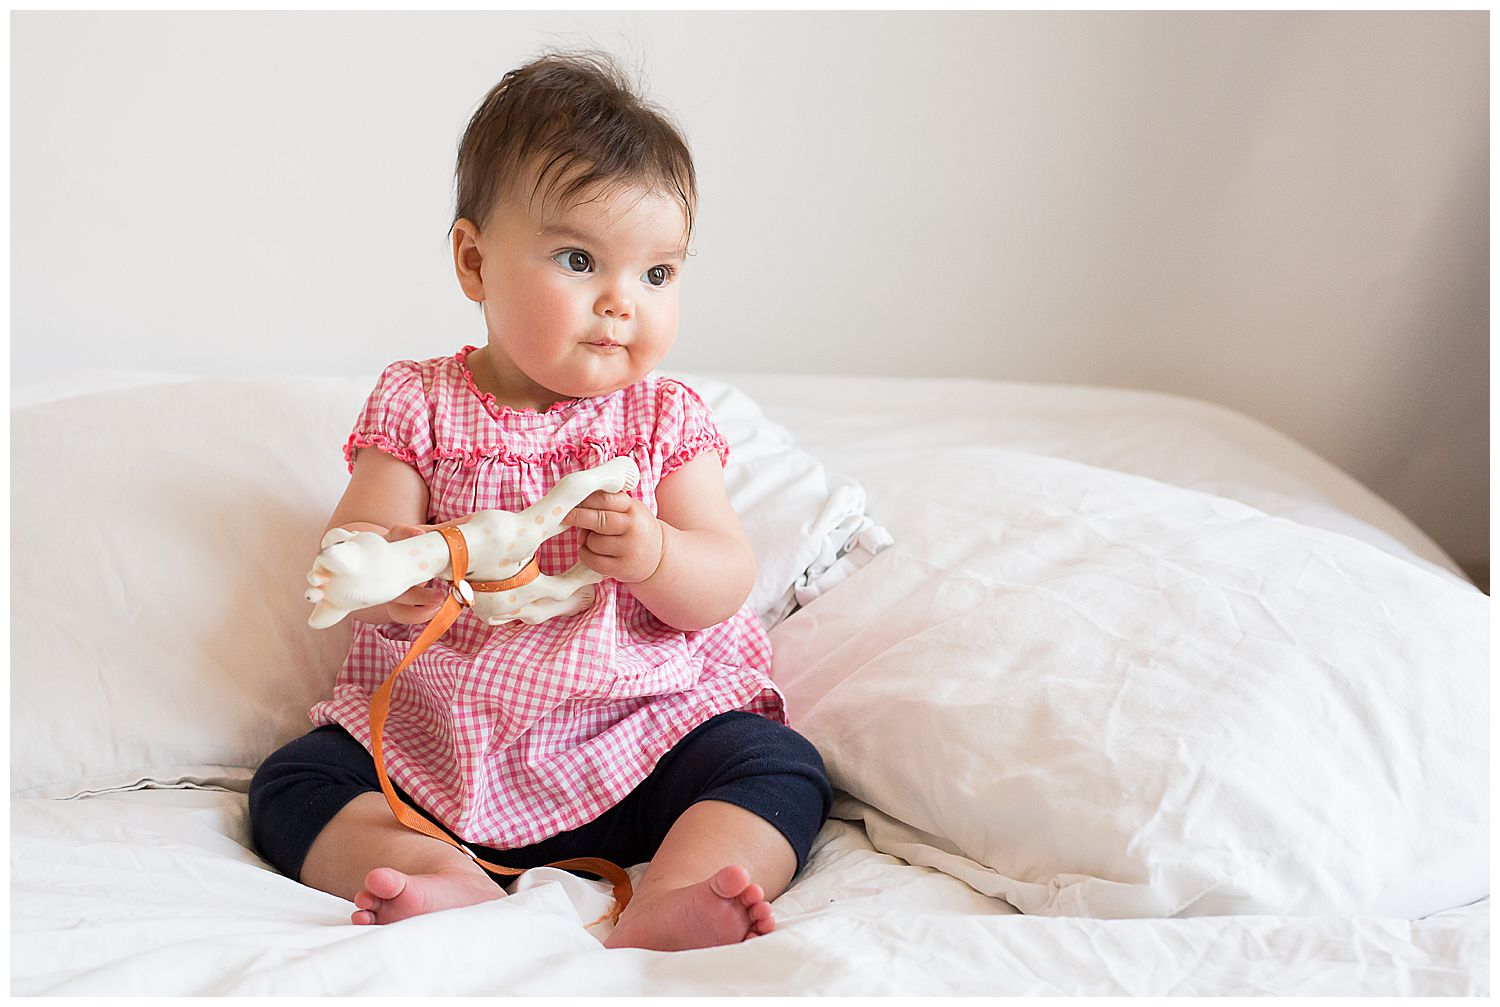 7 month old holding teether